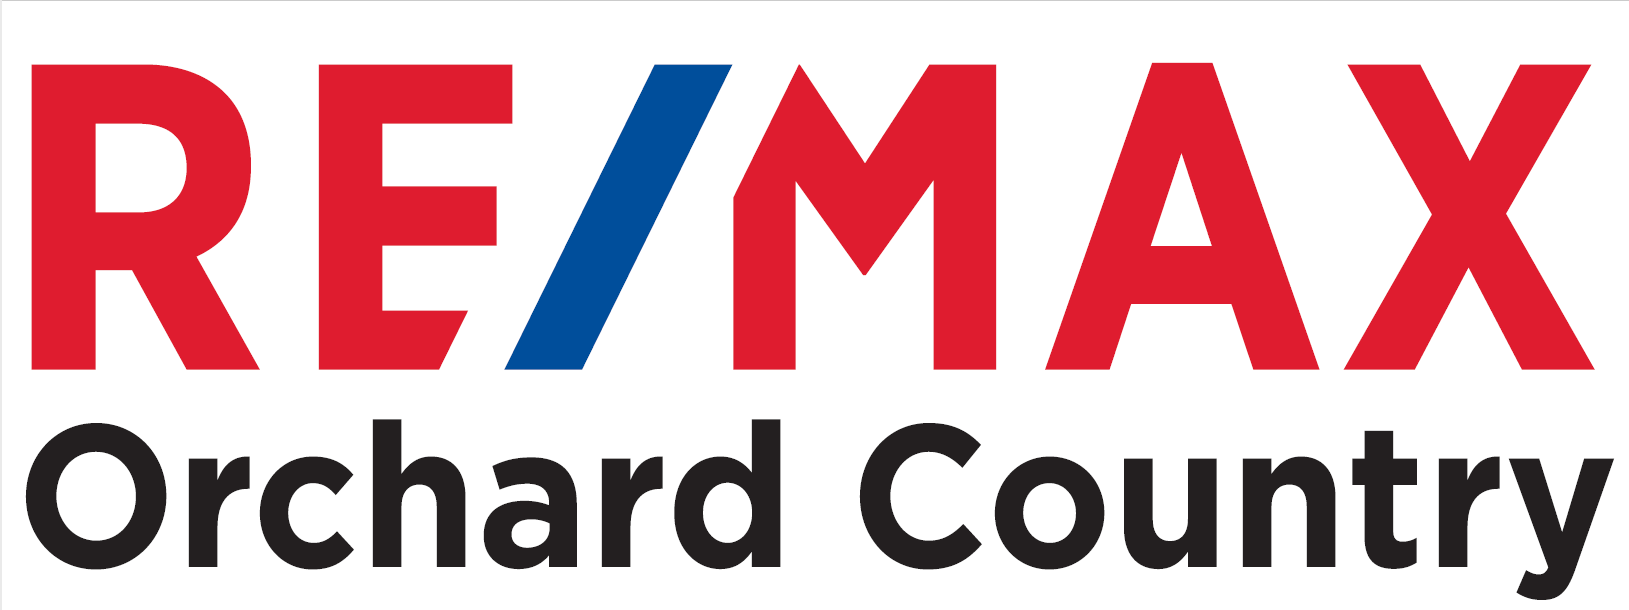 Top 2 Agent at RE/MAX Orchard Country 2020 image